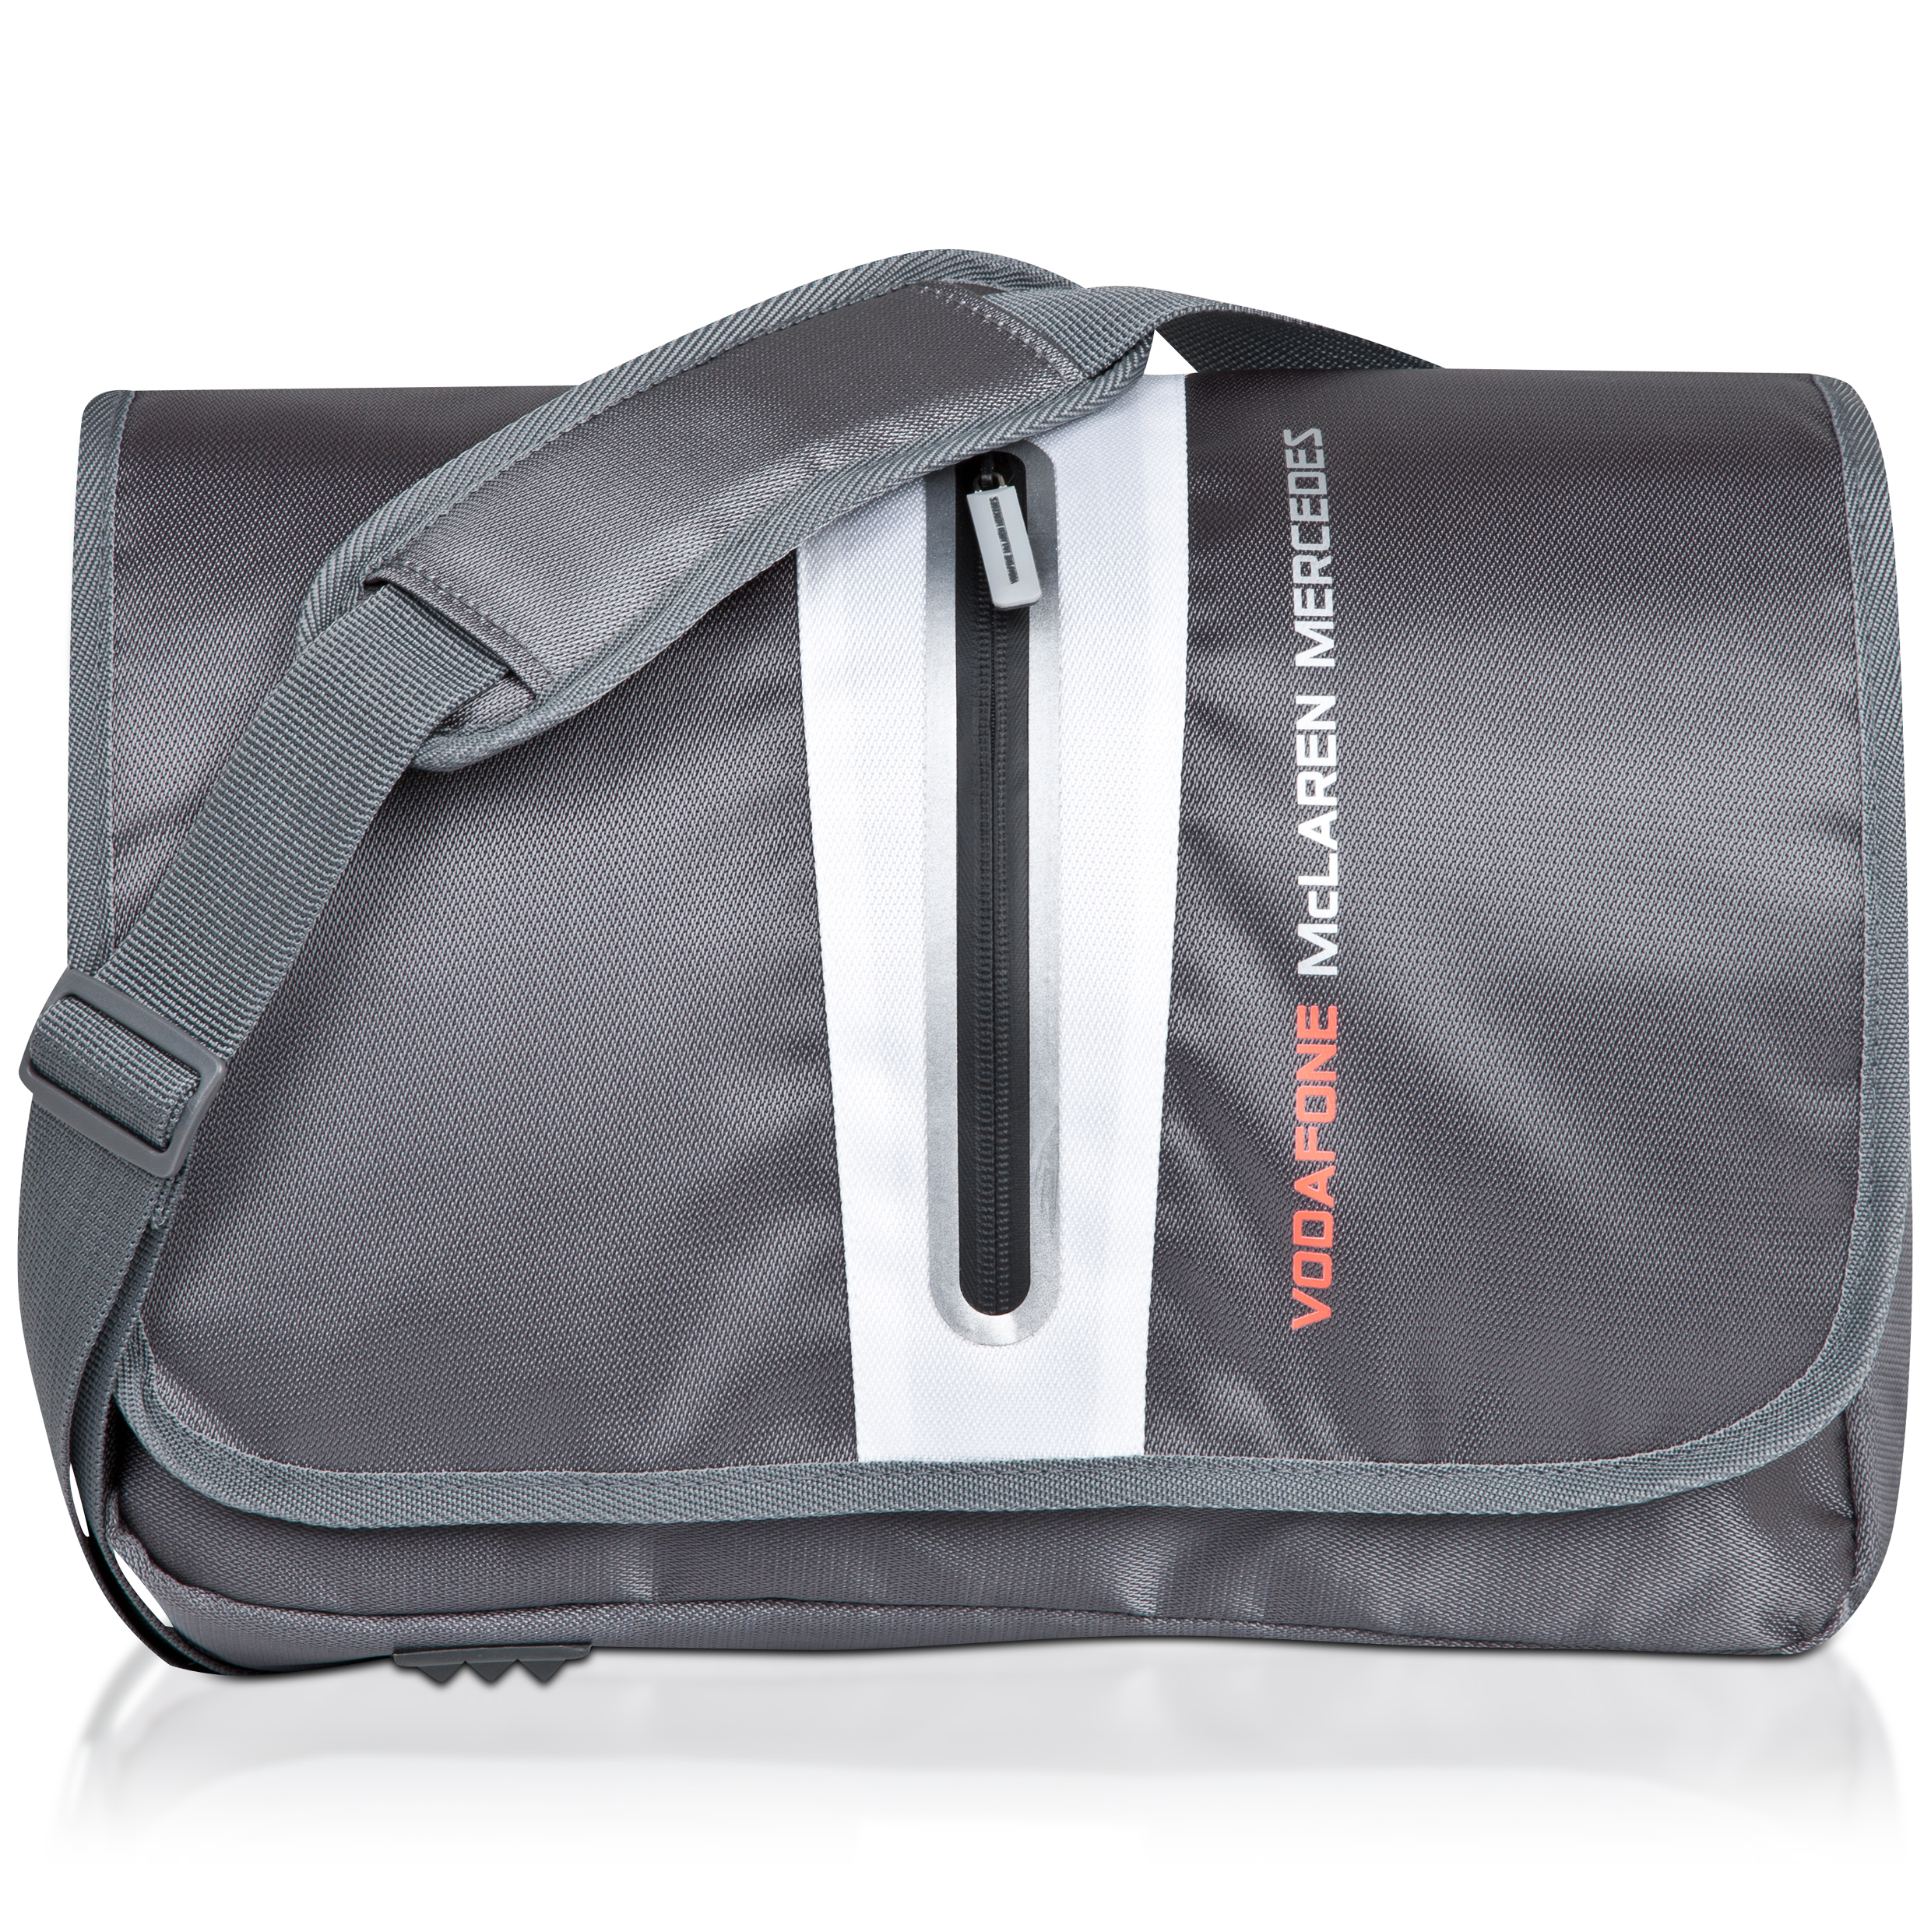 Vodafone McLaren Mercedes Messenger Bag